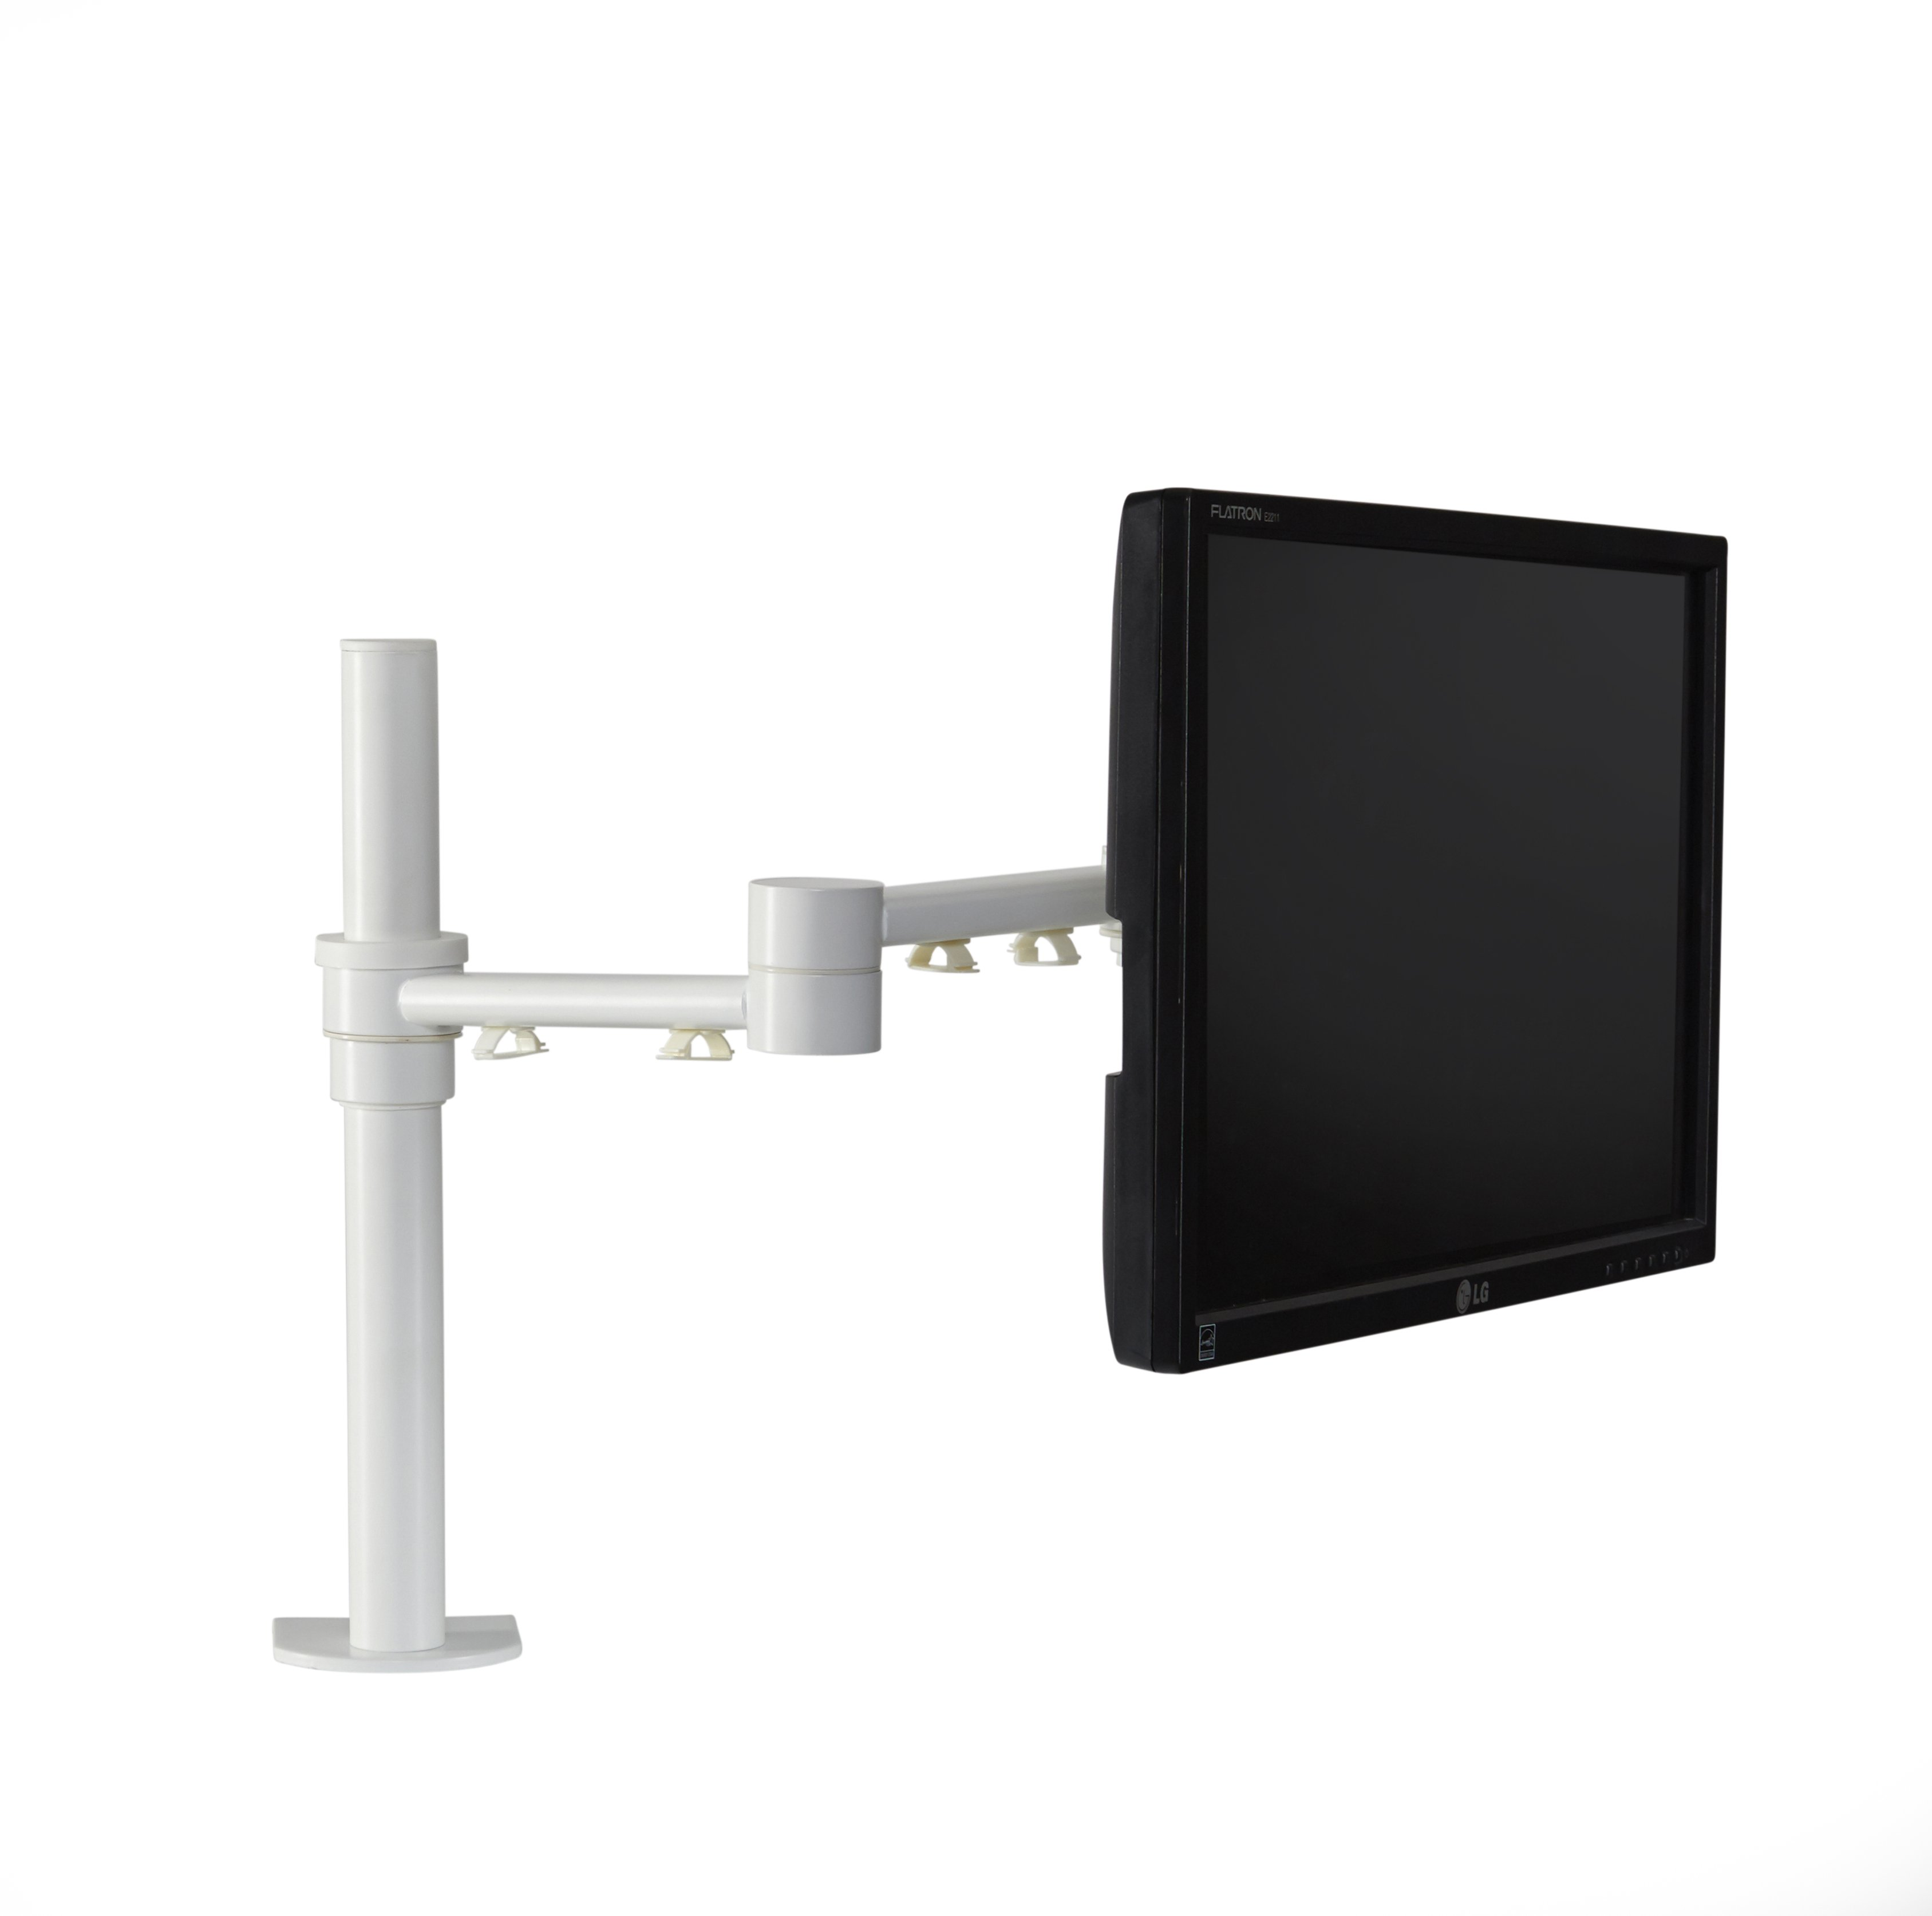 Are Monitor Arms Useful?